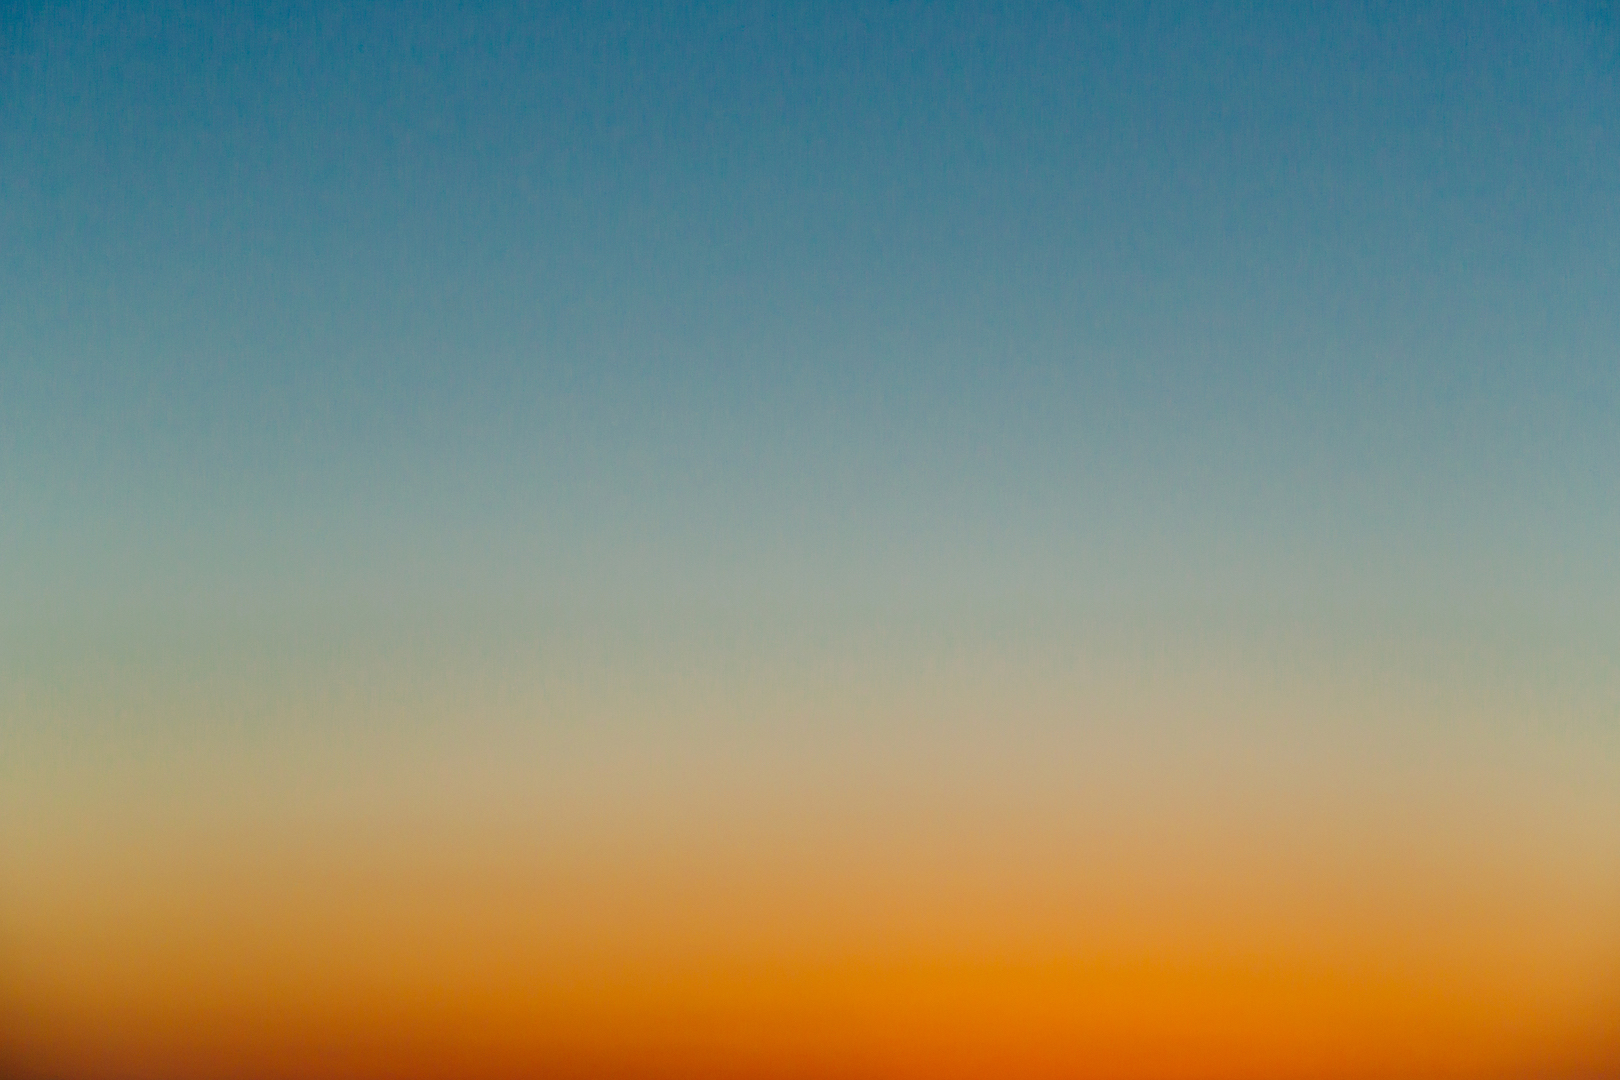 Sunset_Gradient_18